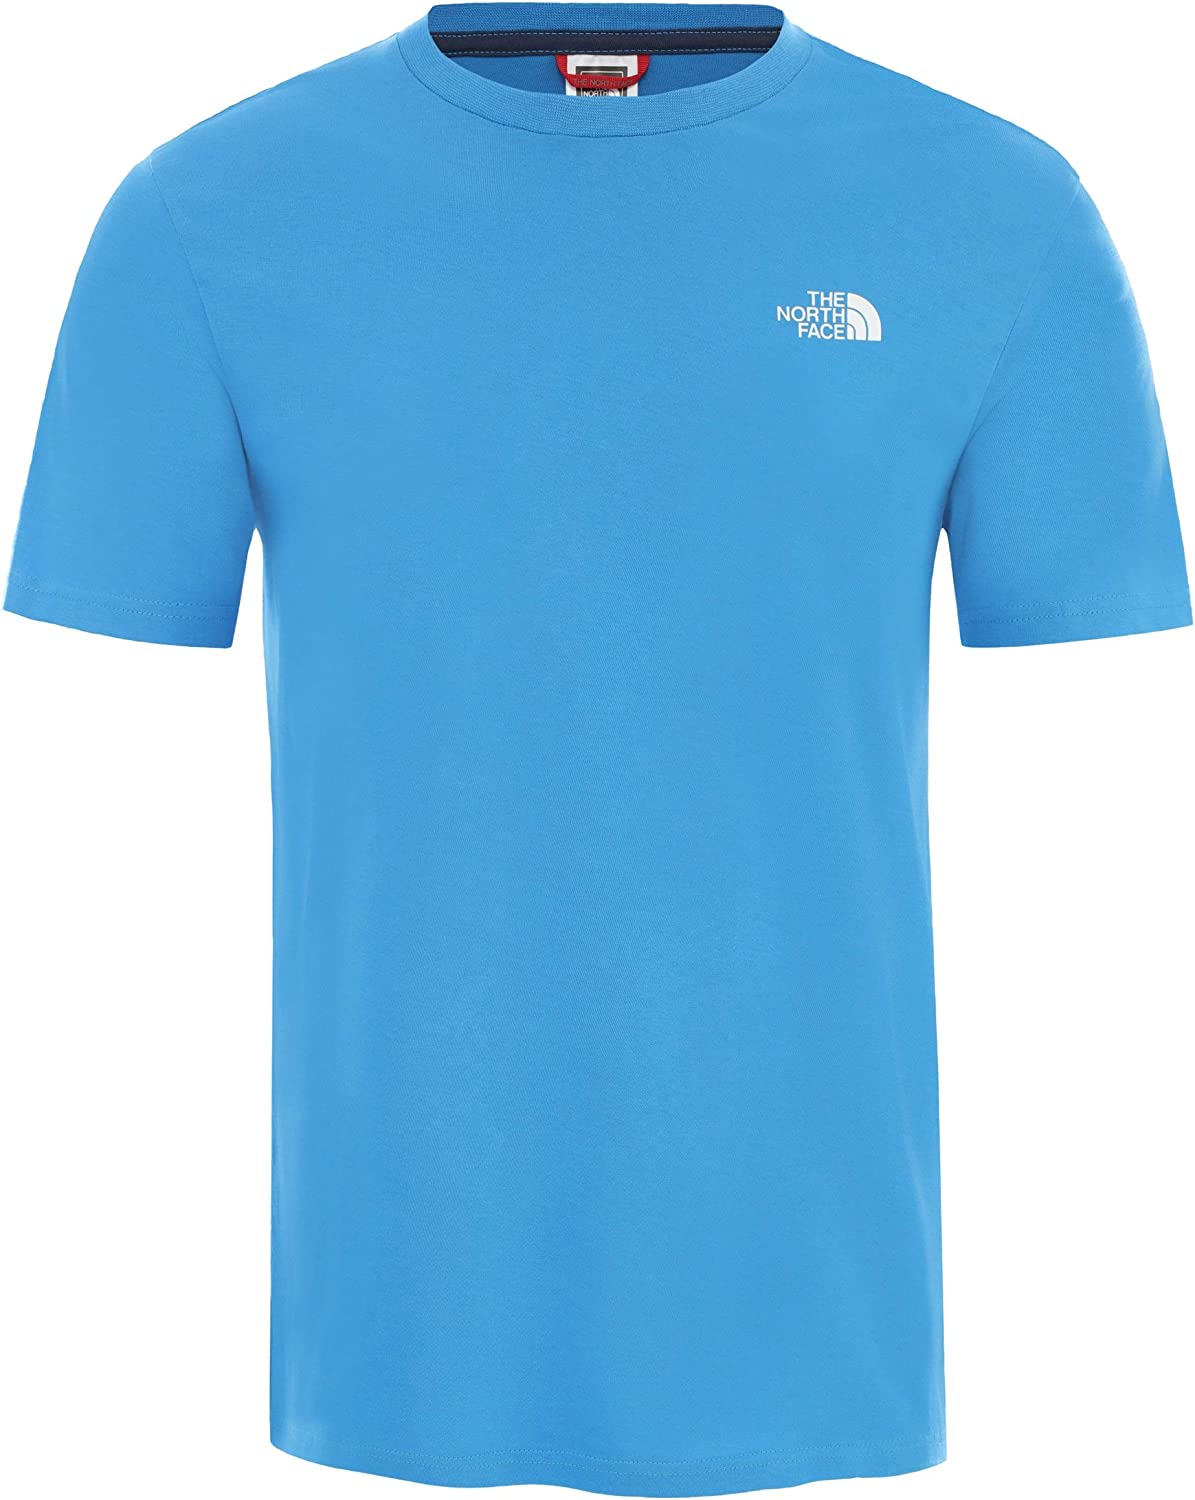 The North Face de los Hombres Camiseta gr/áfica Blanco